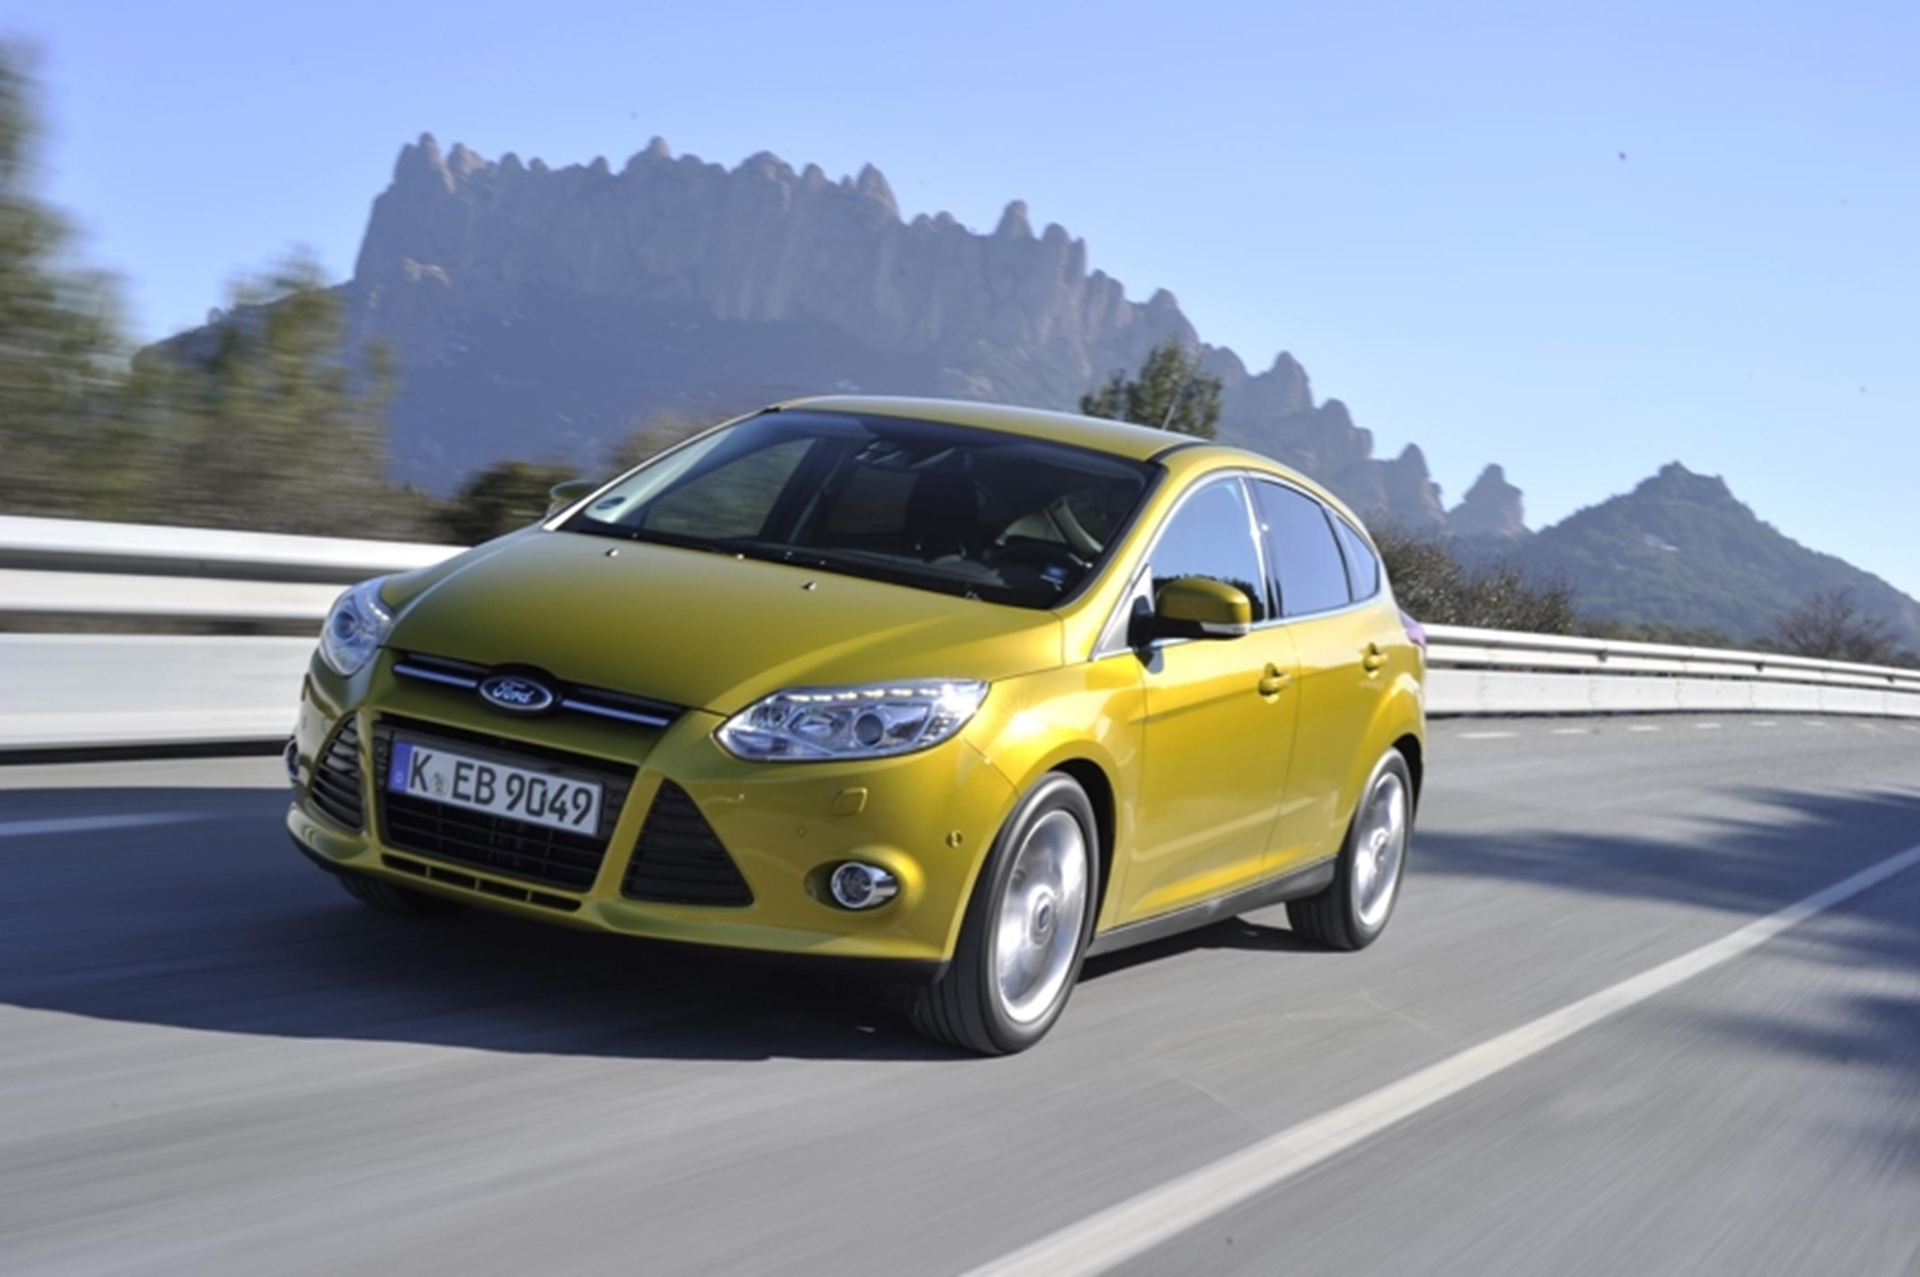 Ford Focus 1.0 litre